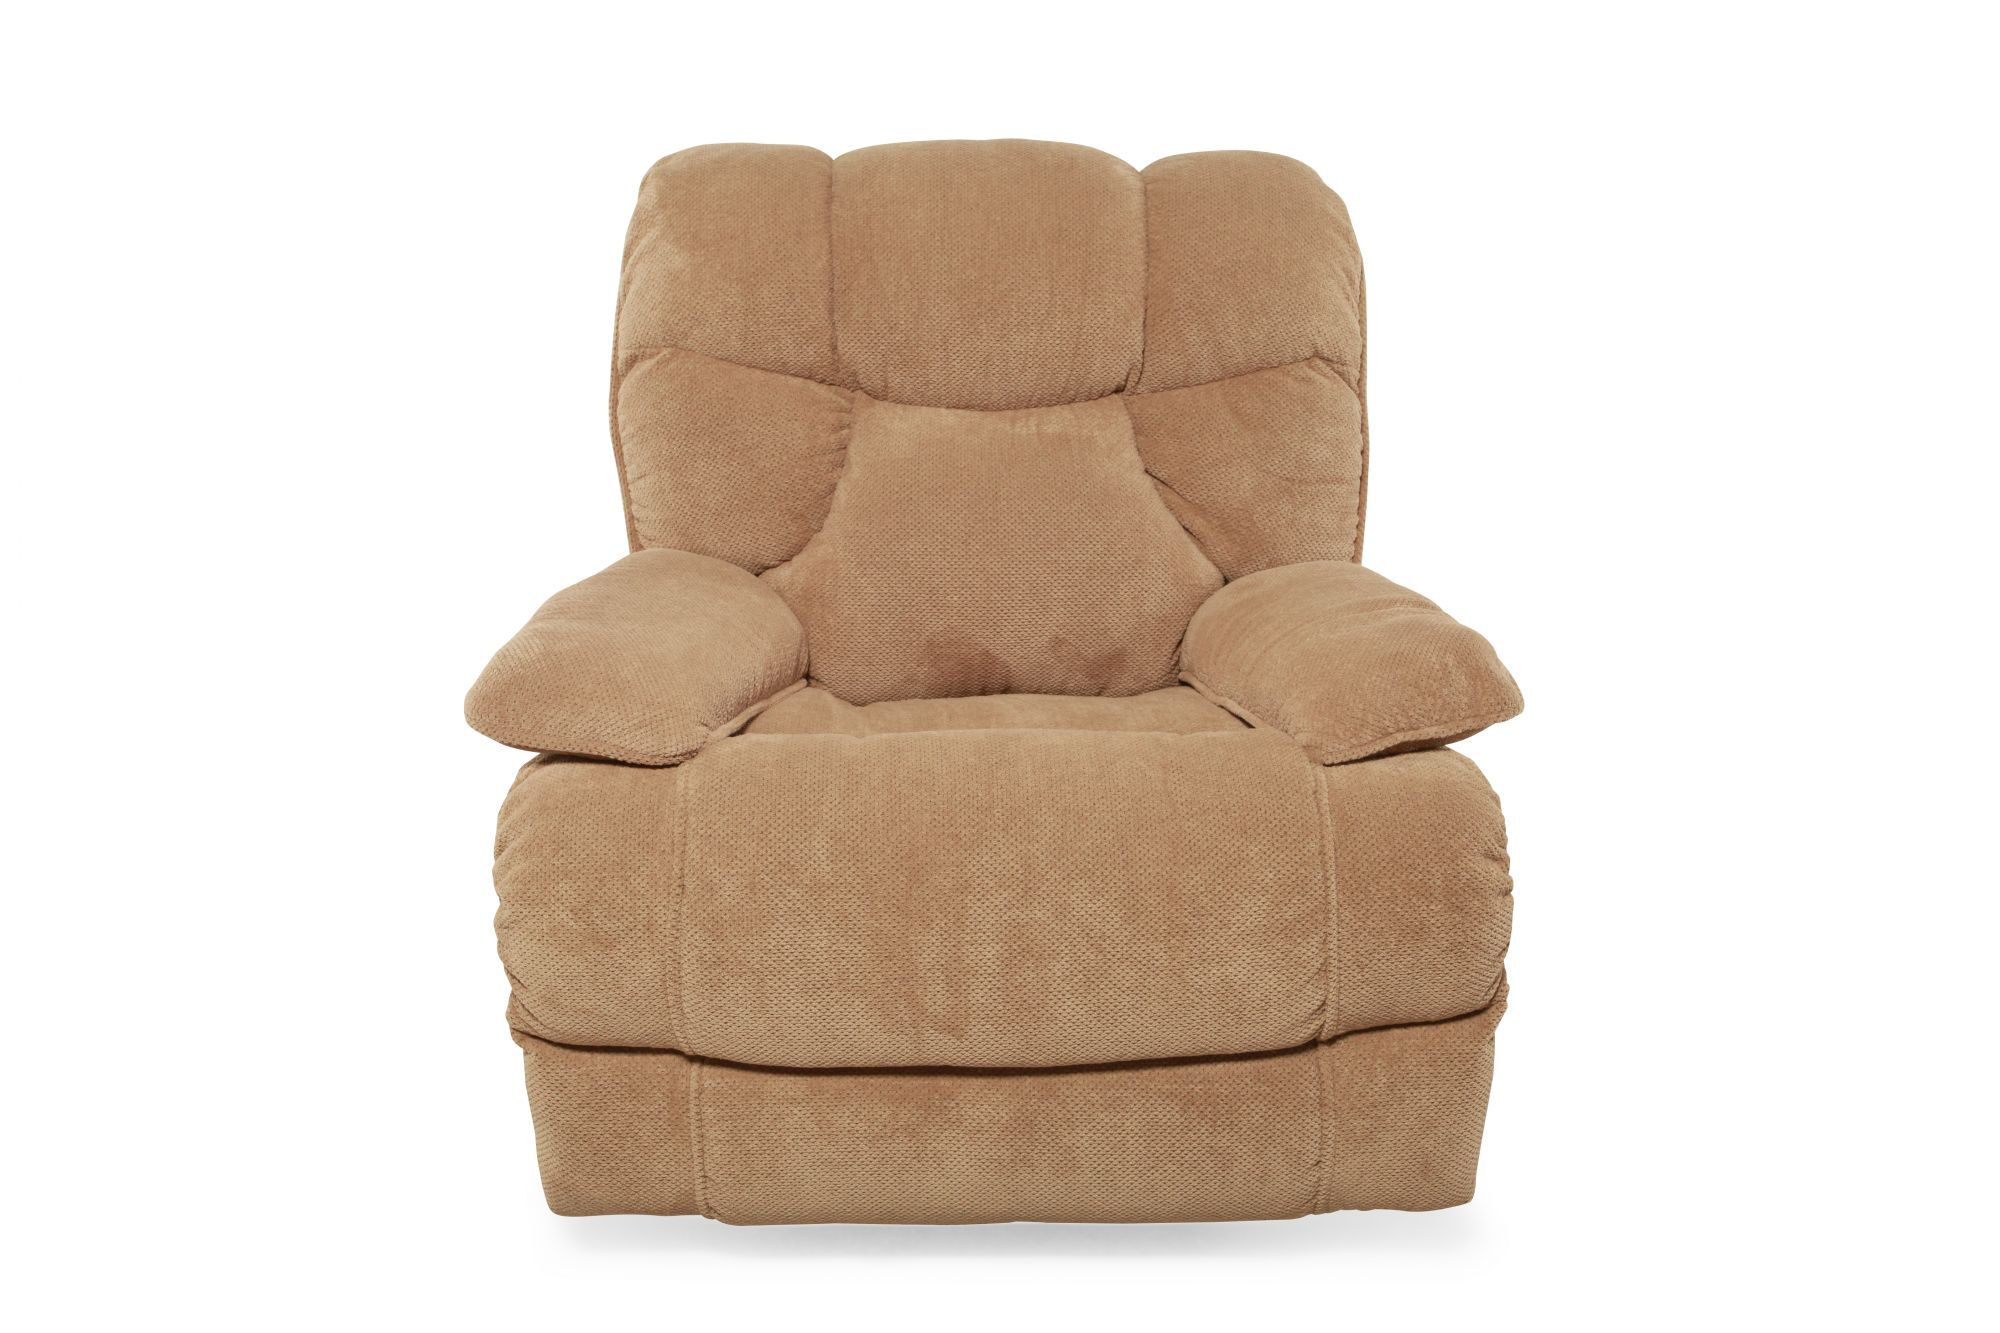 Lane Luck Tan Massage Recliner ...  sc 1 st  Mathis Brothers & Recliners - Reclining Chairs u0026 Sofas | Mathis Brothers islam-shia.org